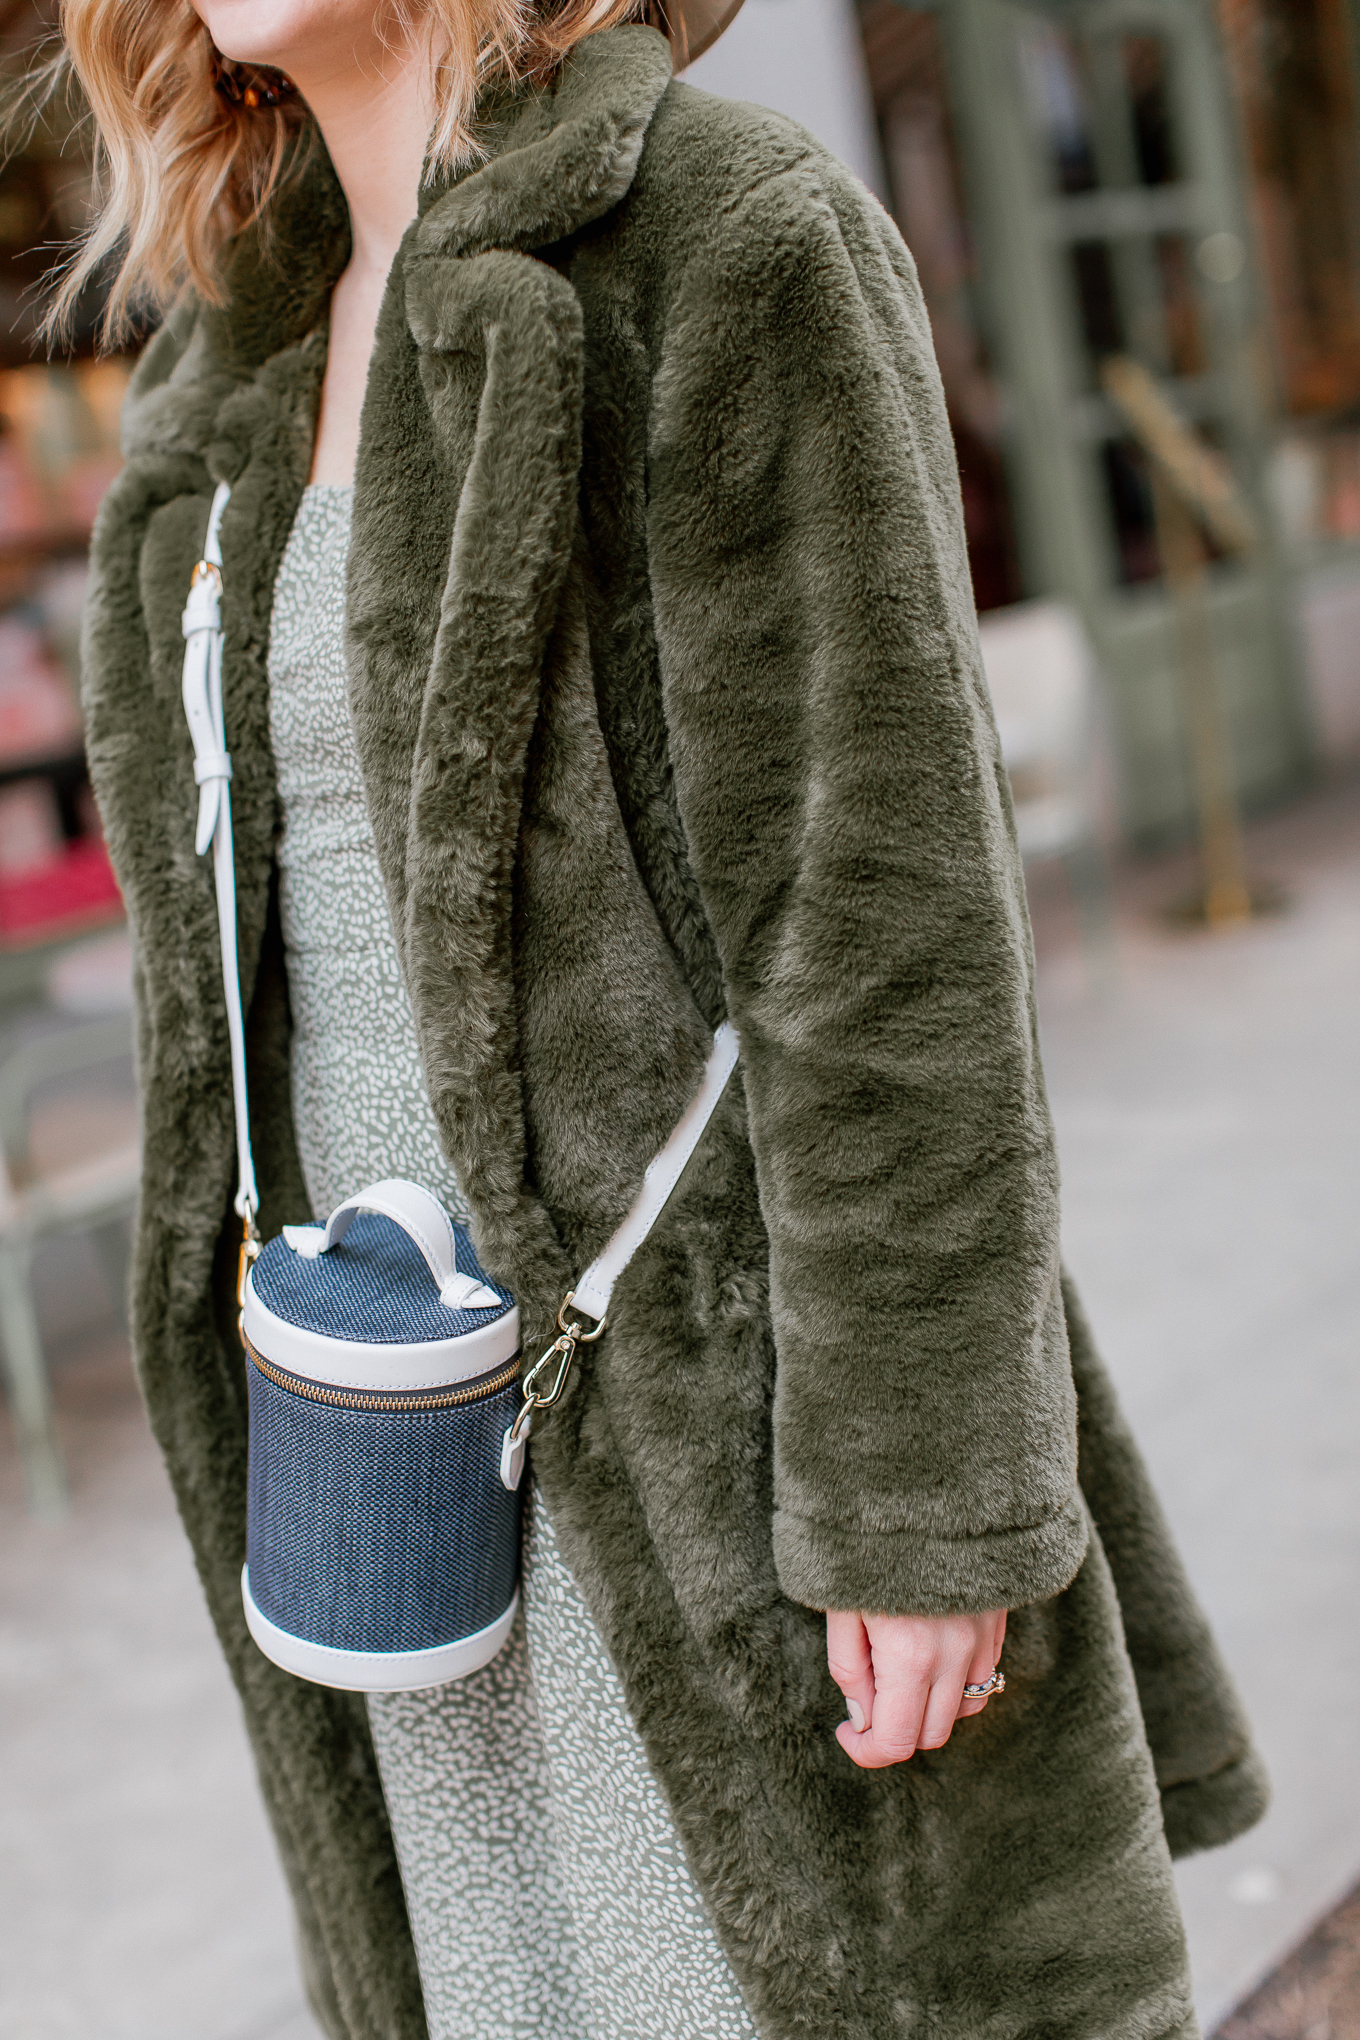 Paravel Capsule Bag, Navy and White Bag | Louella Reese